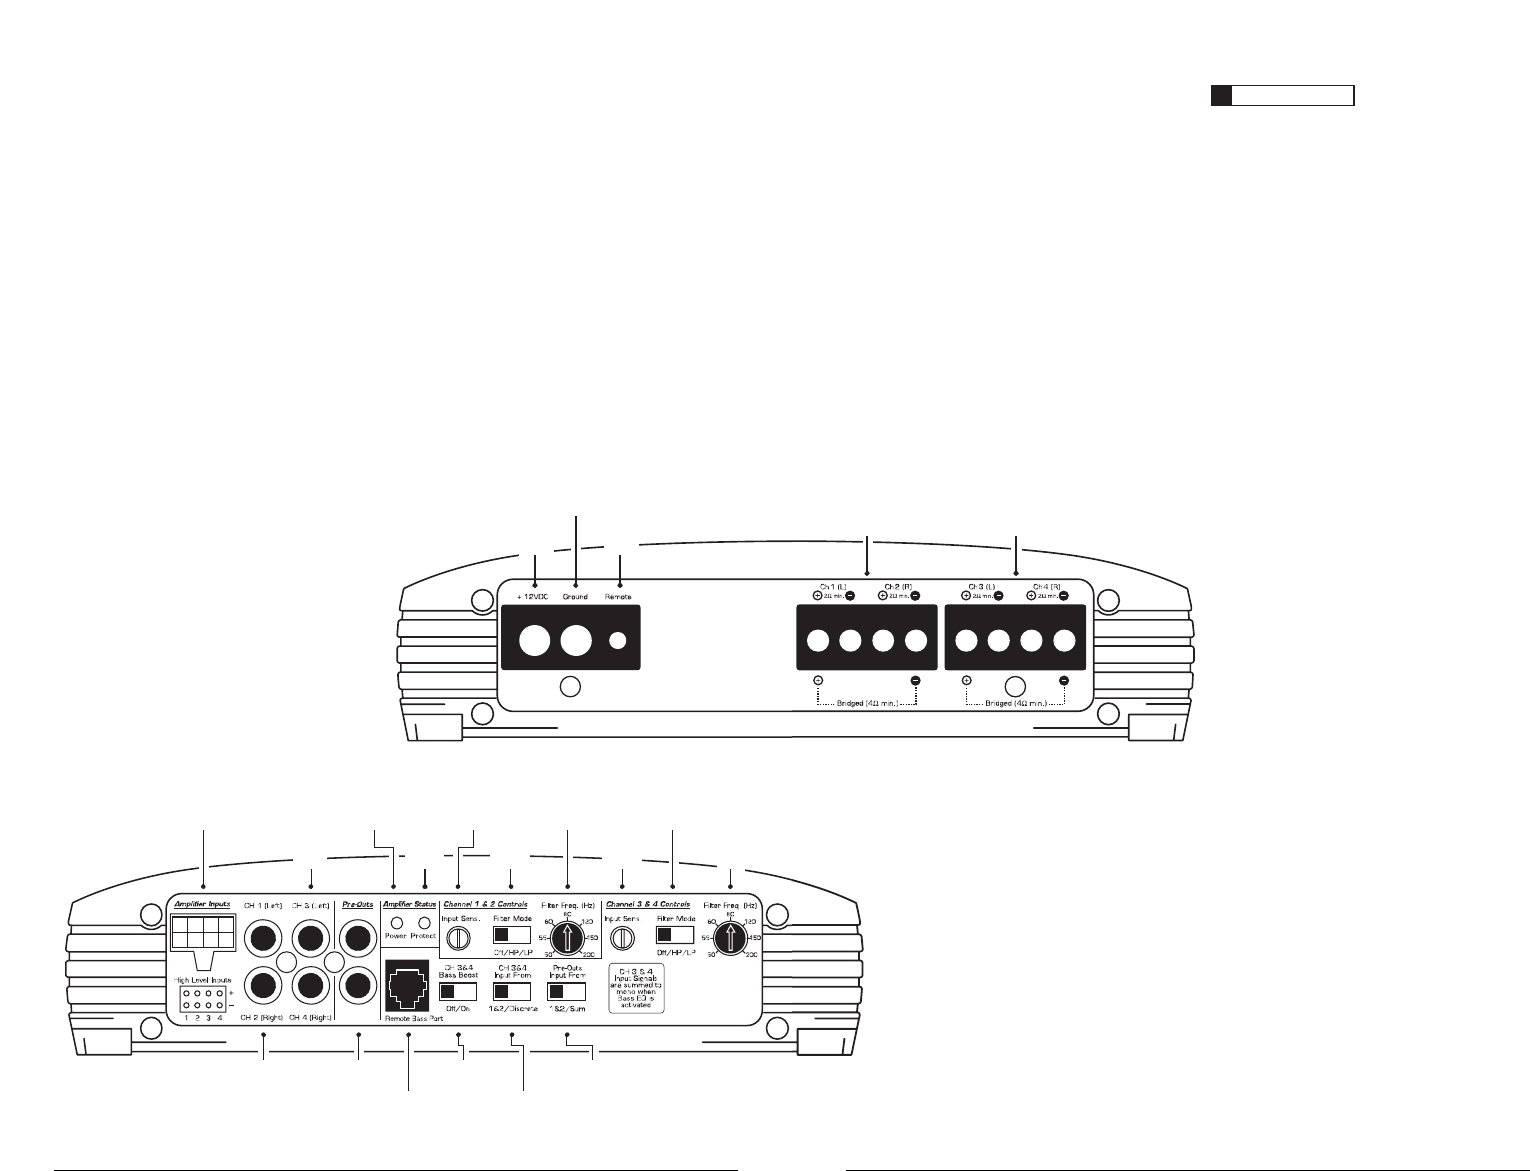 page 2 of jl audio car stereo system e4300 user guide rh caraudio manualsonline com JL Audio Amps JL Audio Wiring Diagram